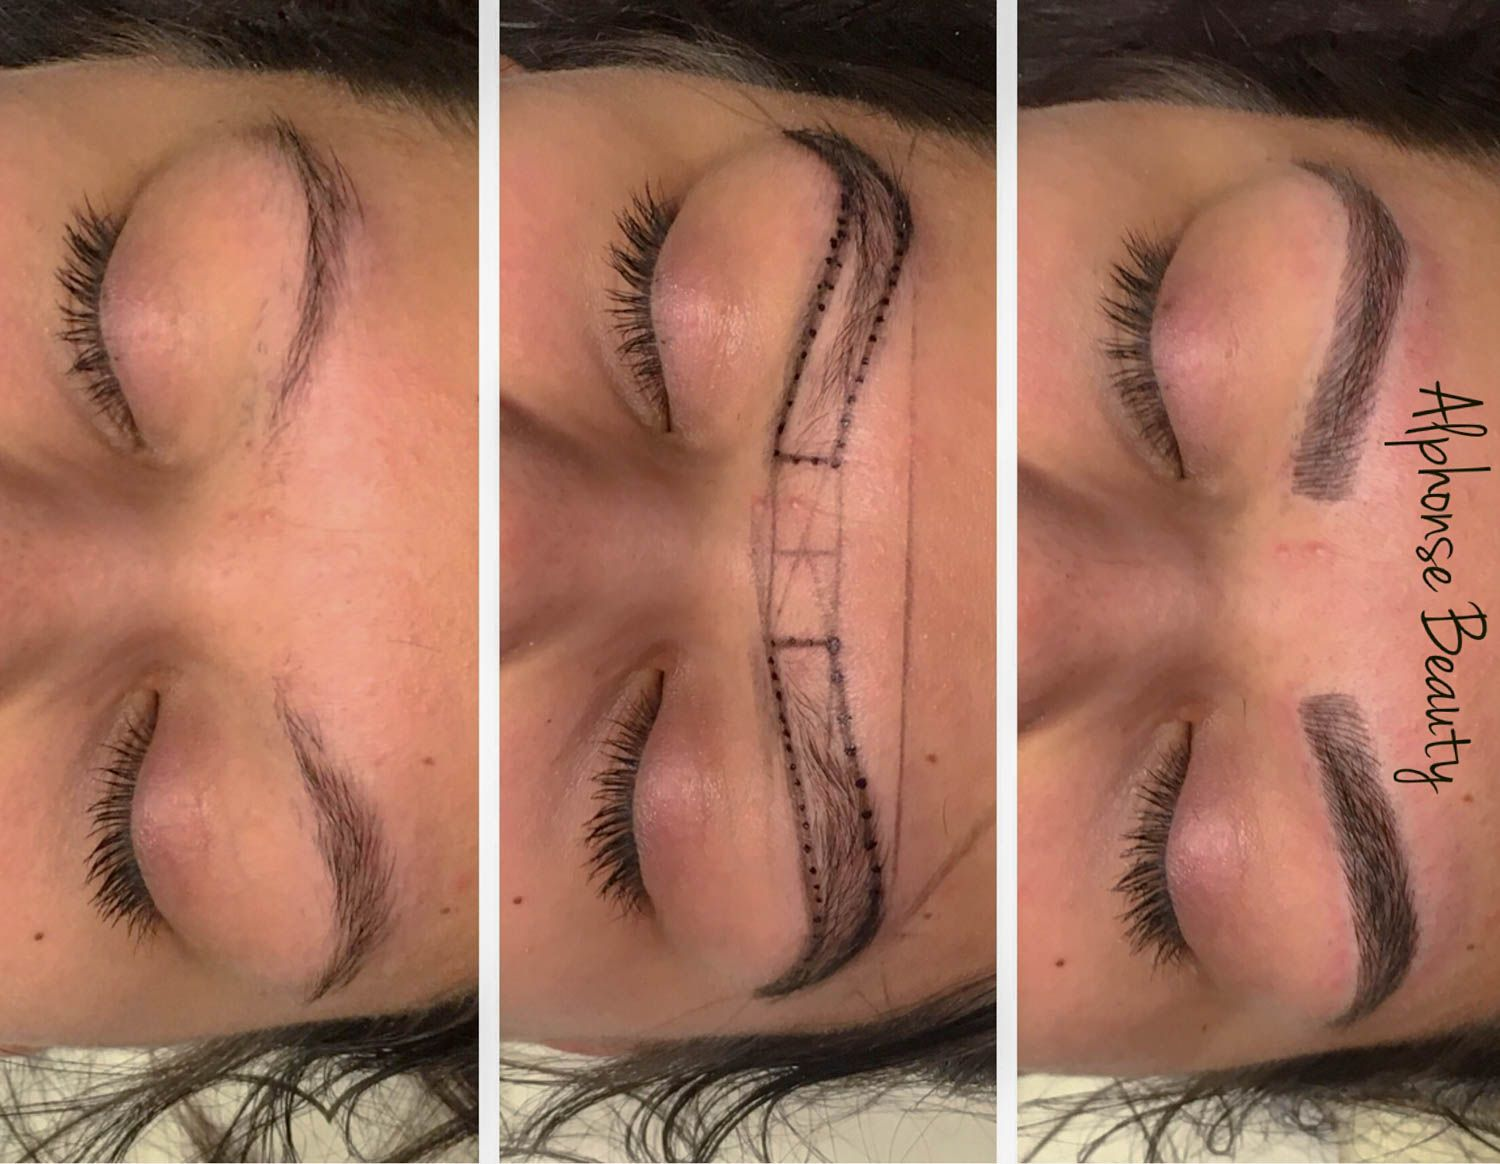 Stages of permanent makeup procedure for eyebrows